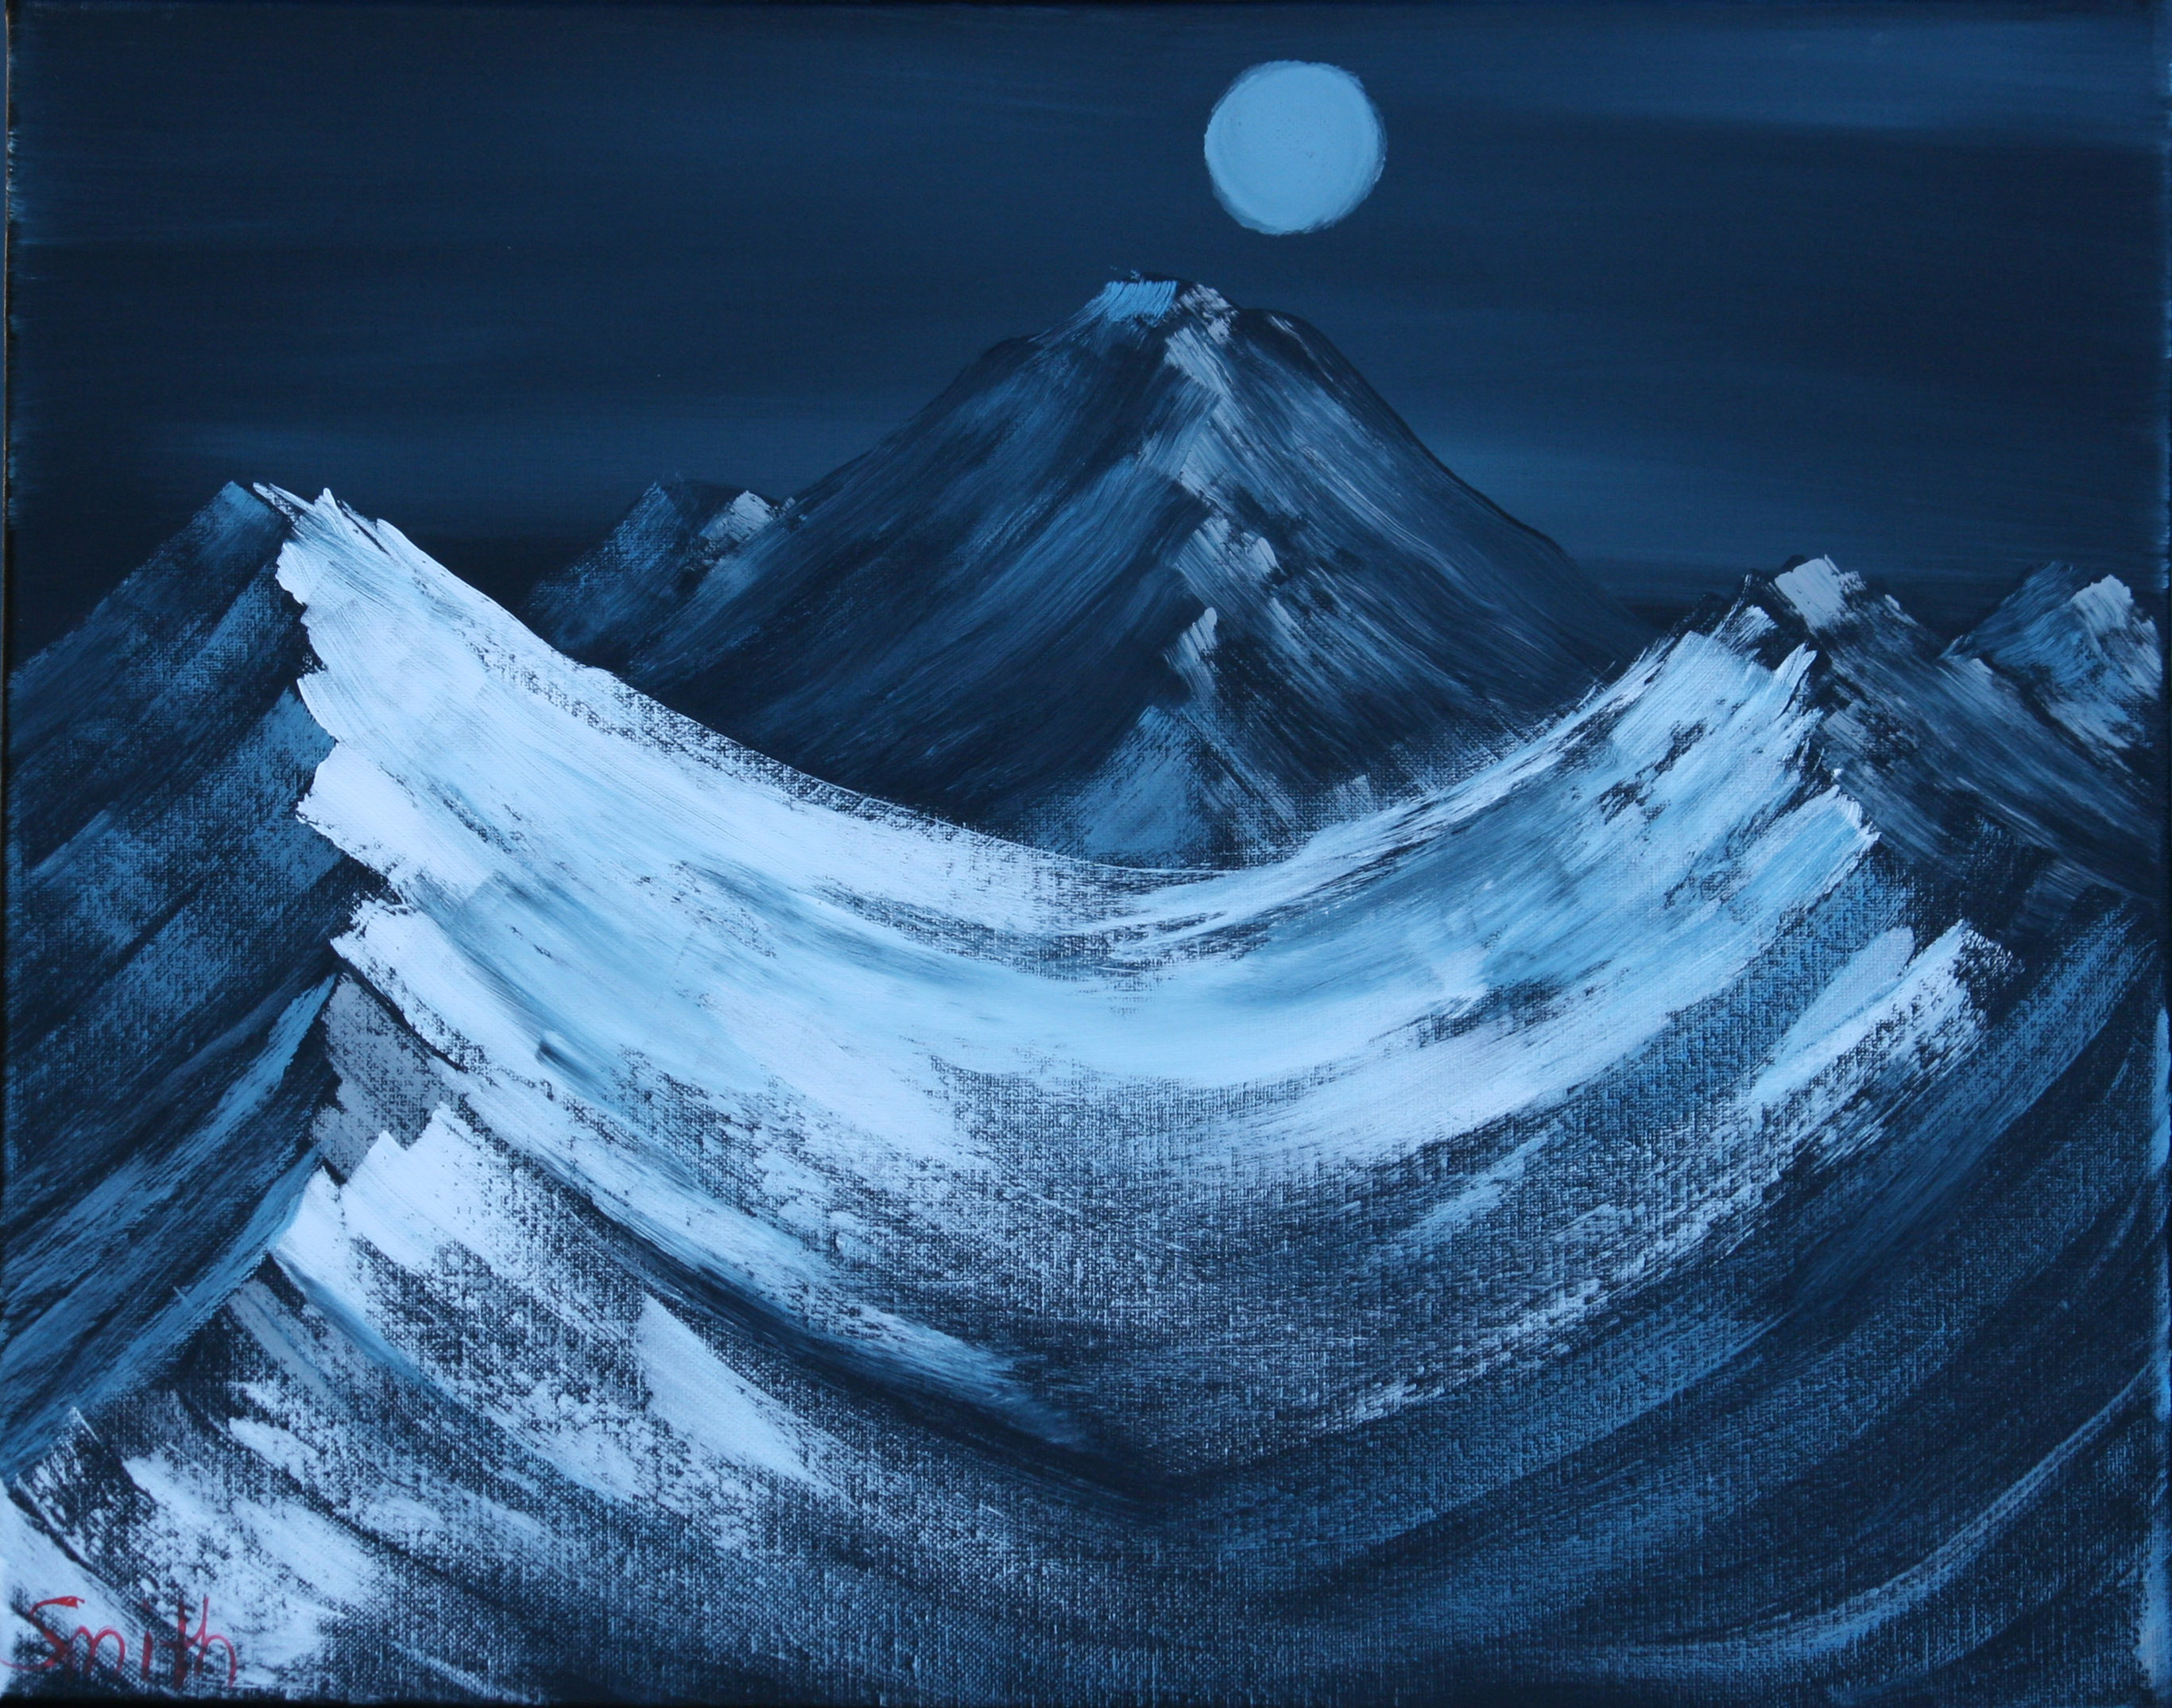 Nighttime-Artic-Mountain